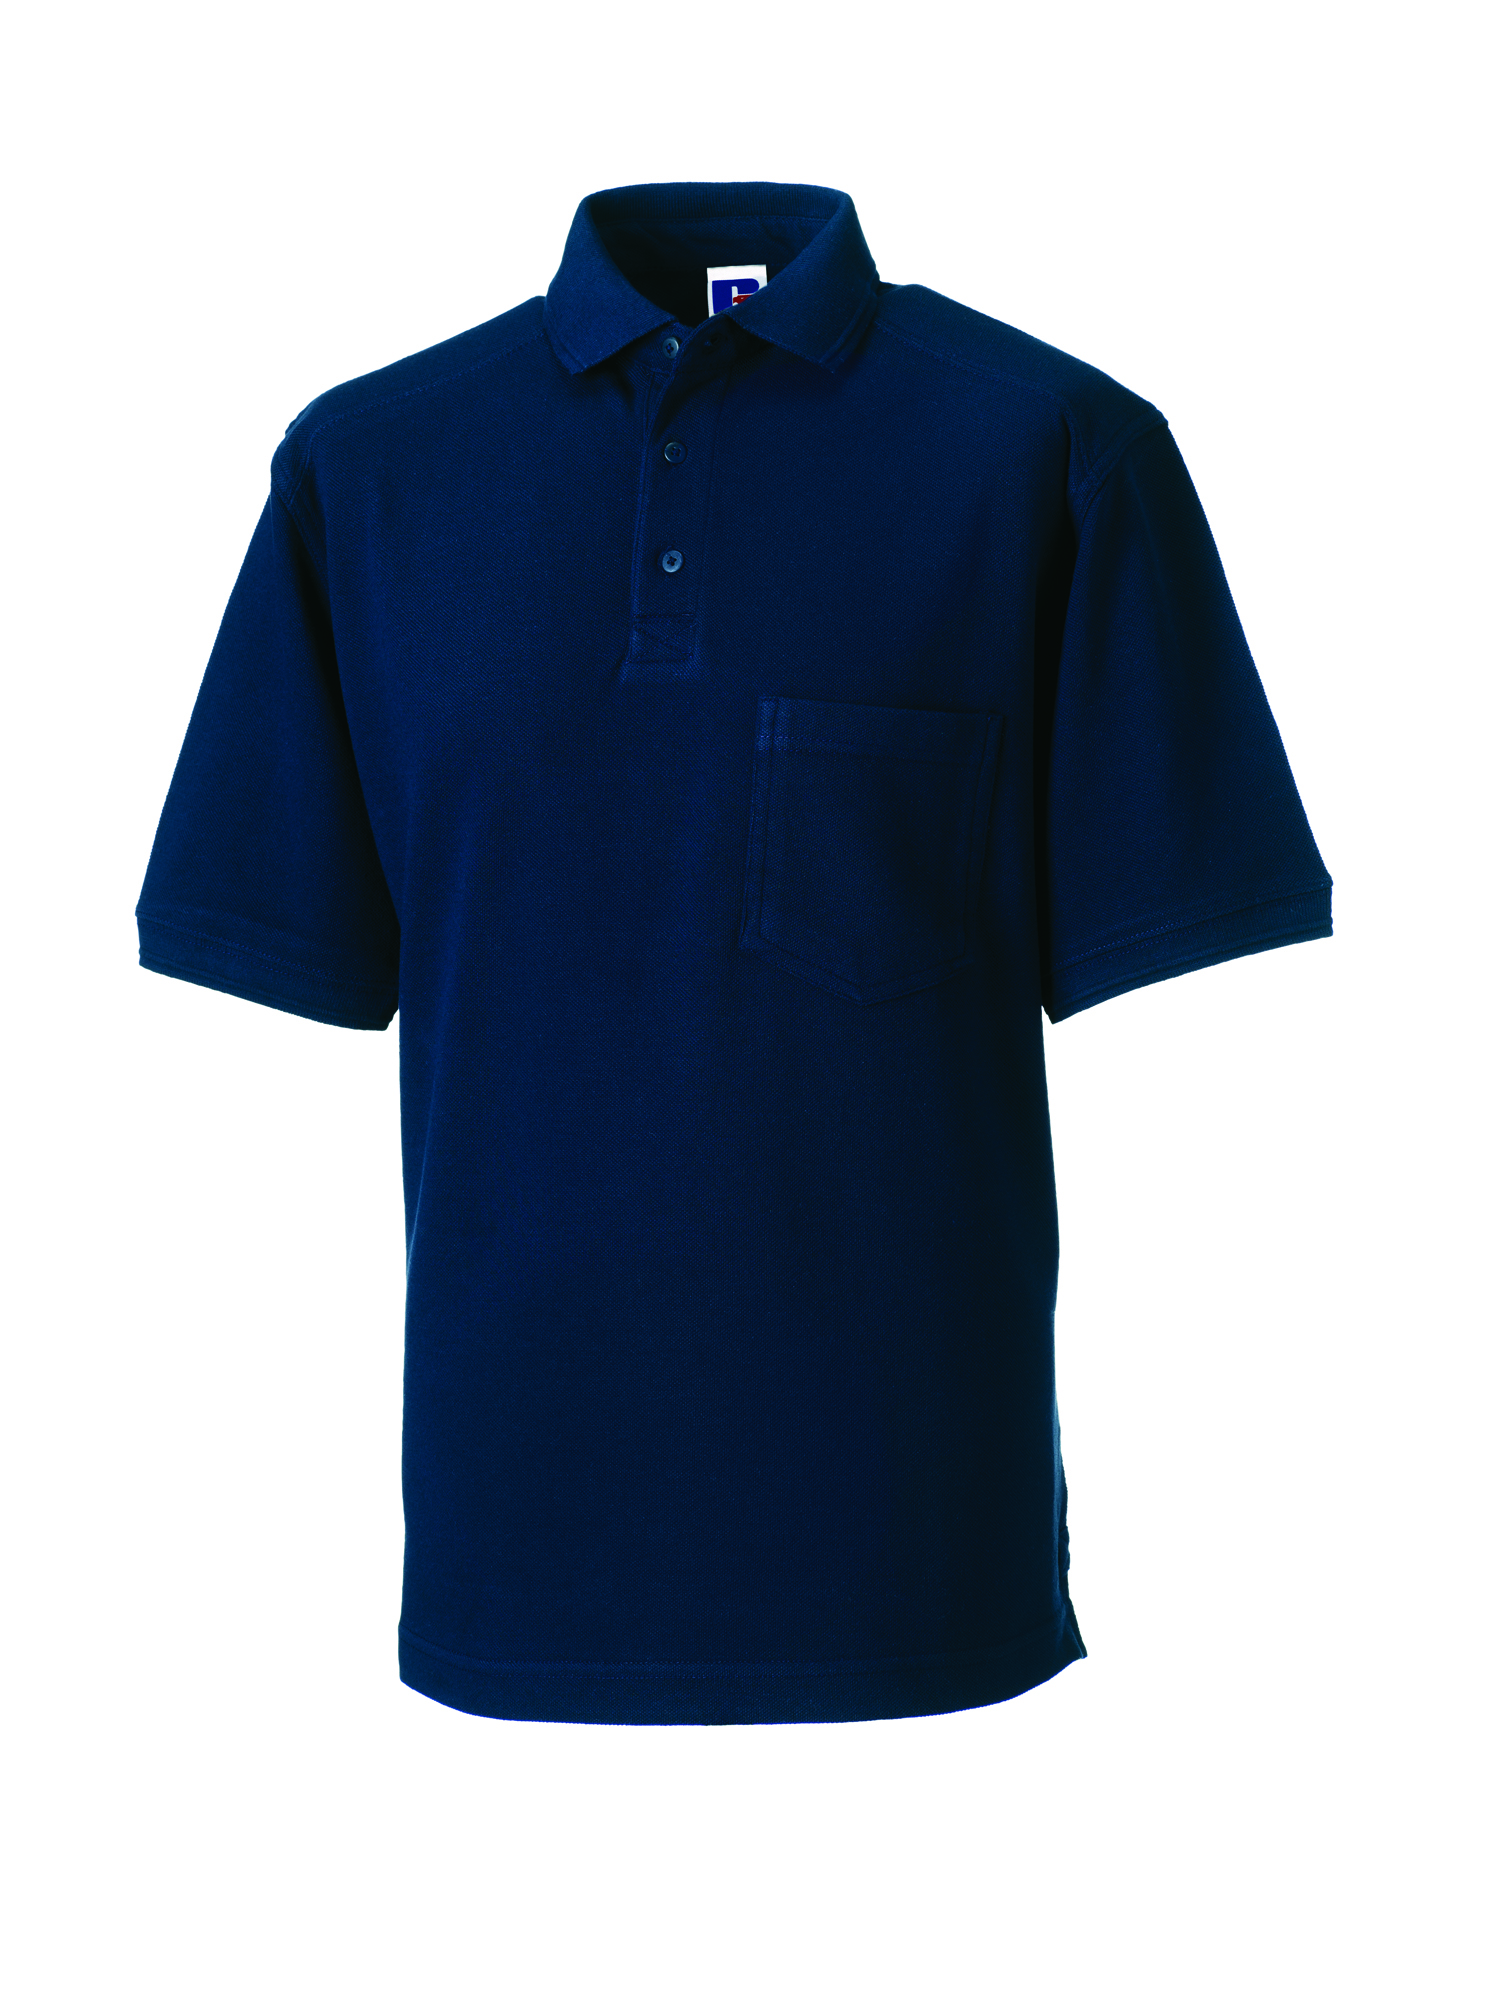 Heavy Duty Cotton Polo - Light Oxford - XS